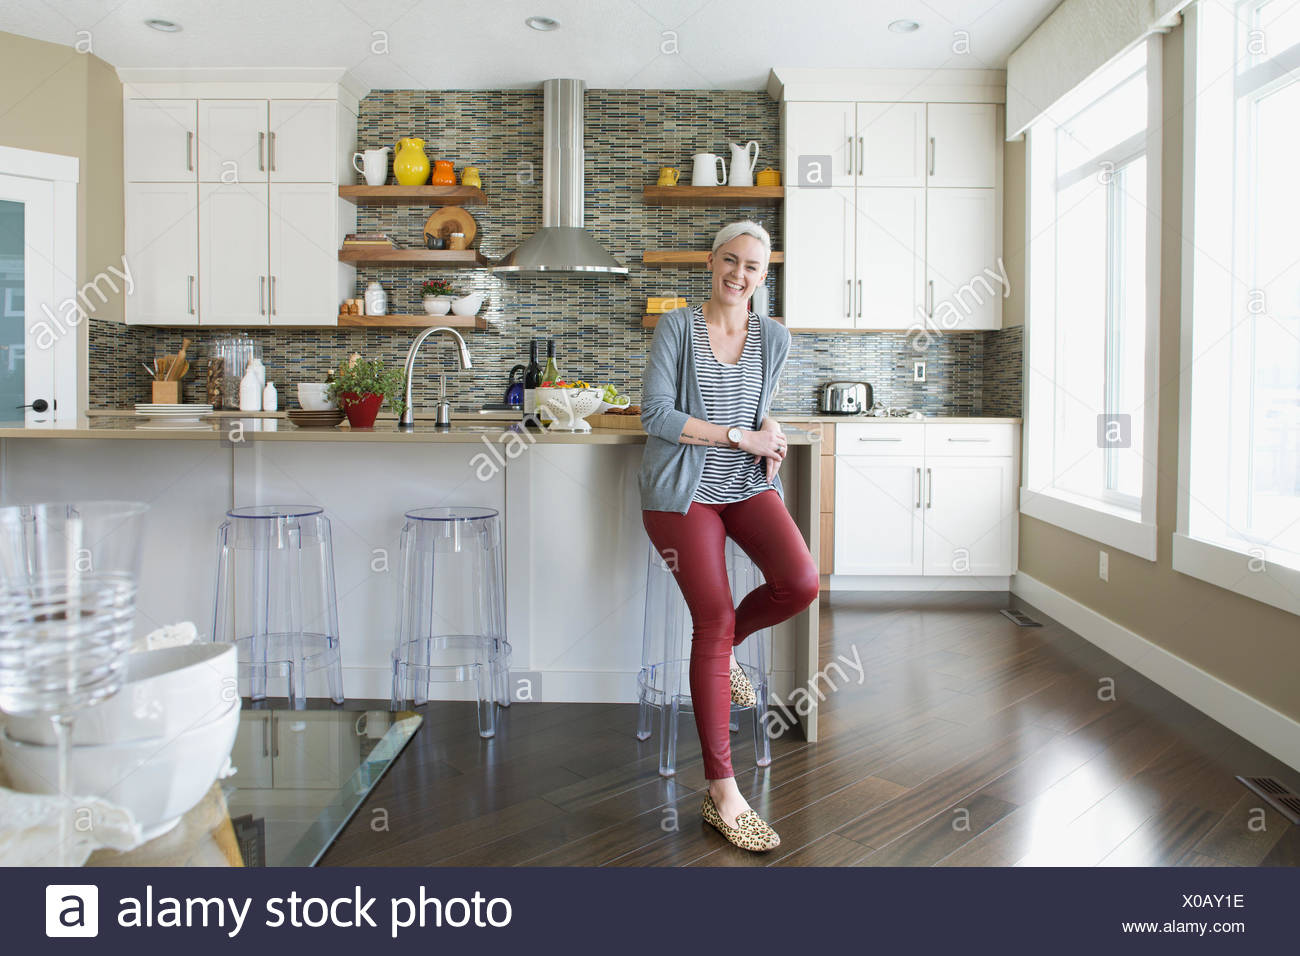 Portrait of smiling woman in kitchen - Stock Image